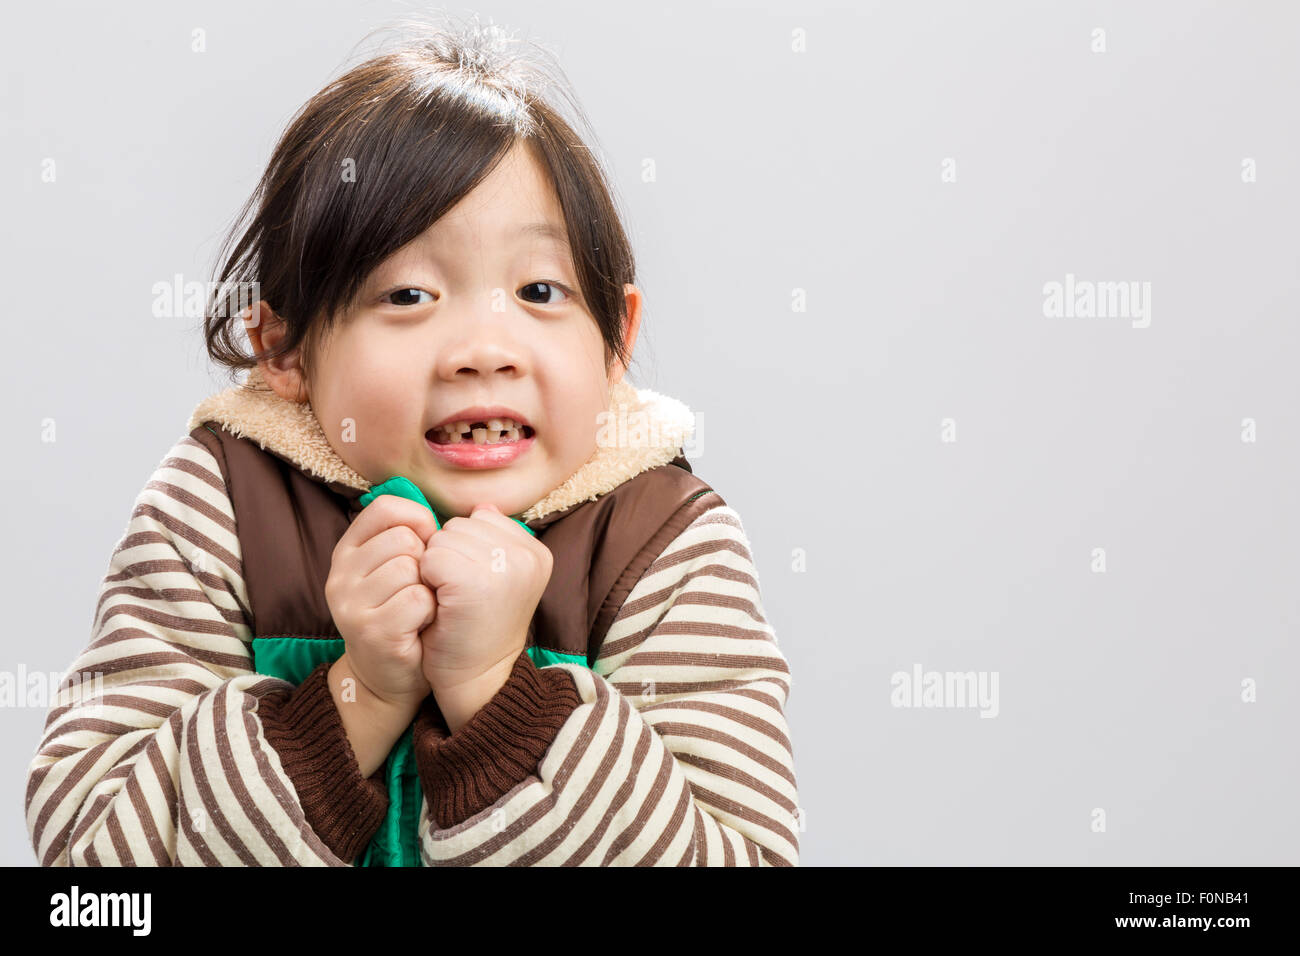 shivering stock photos shivering stock images alamy